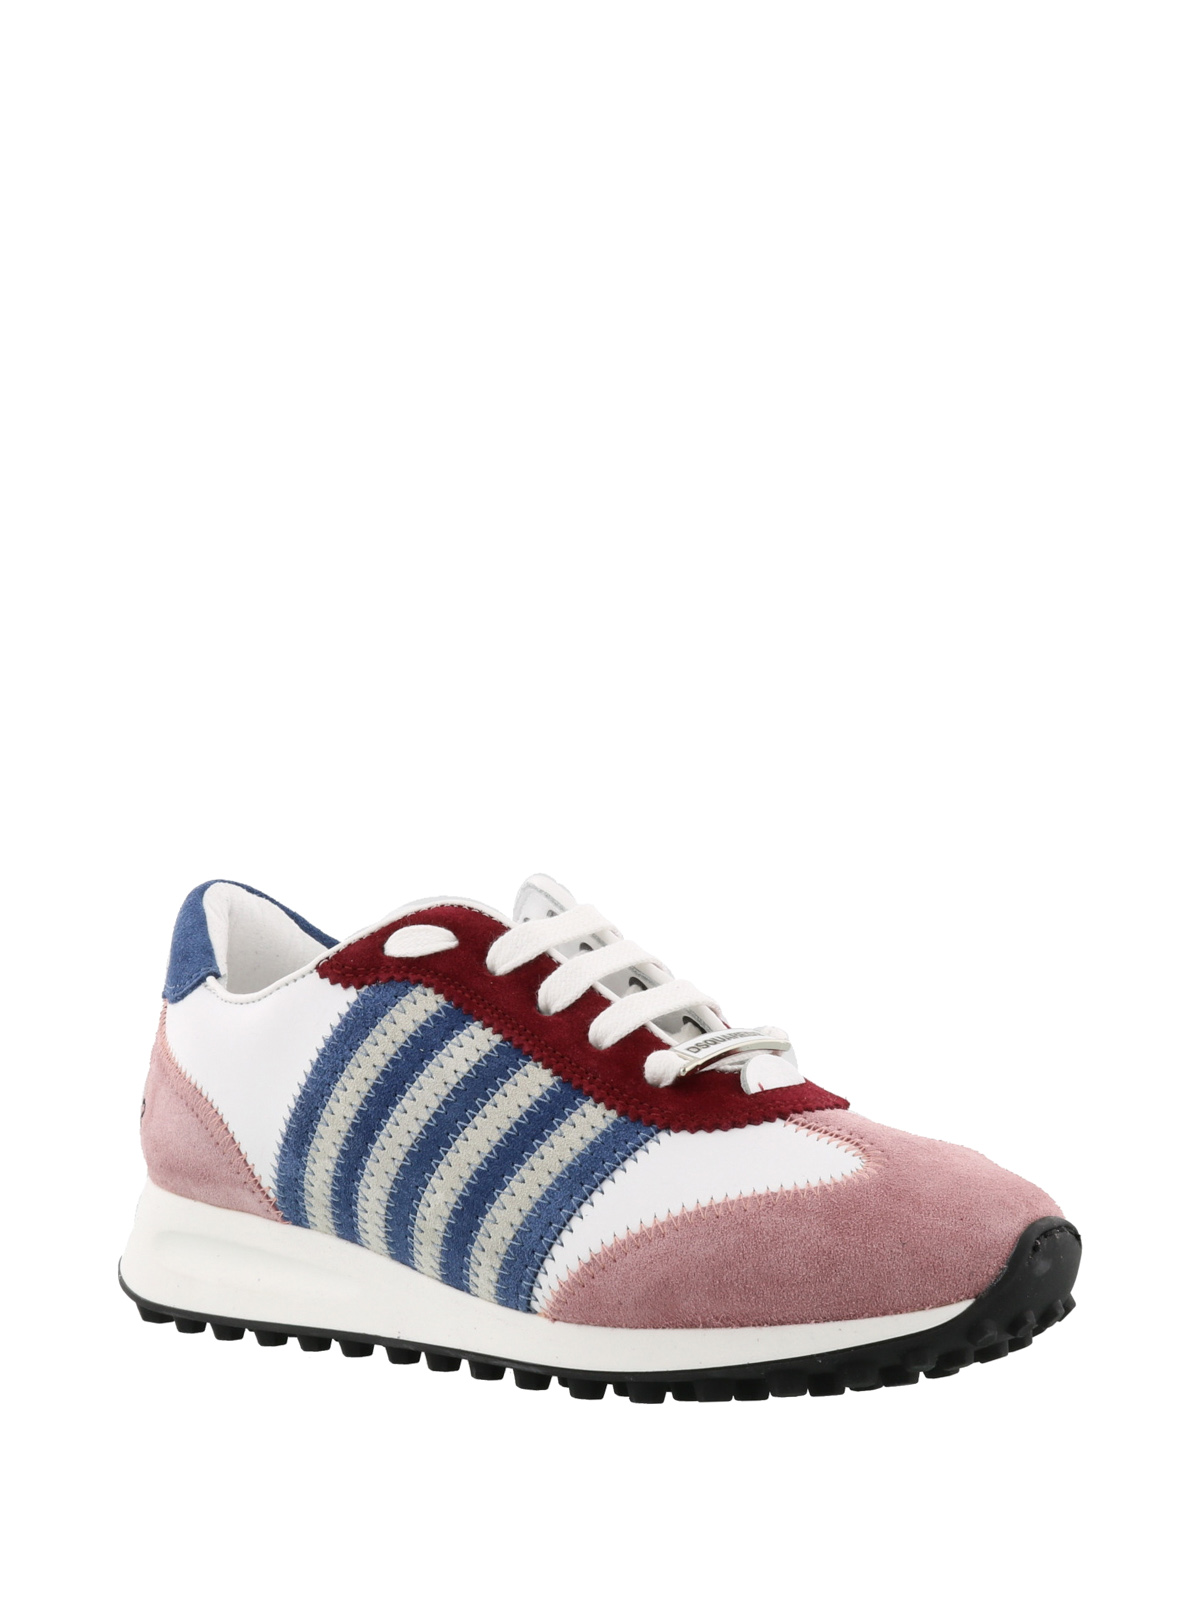 New Runner Hiking sneakers - Multicolour Dsquared2 ymAuuGAJm